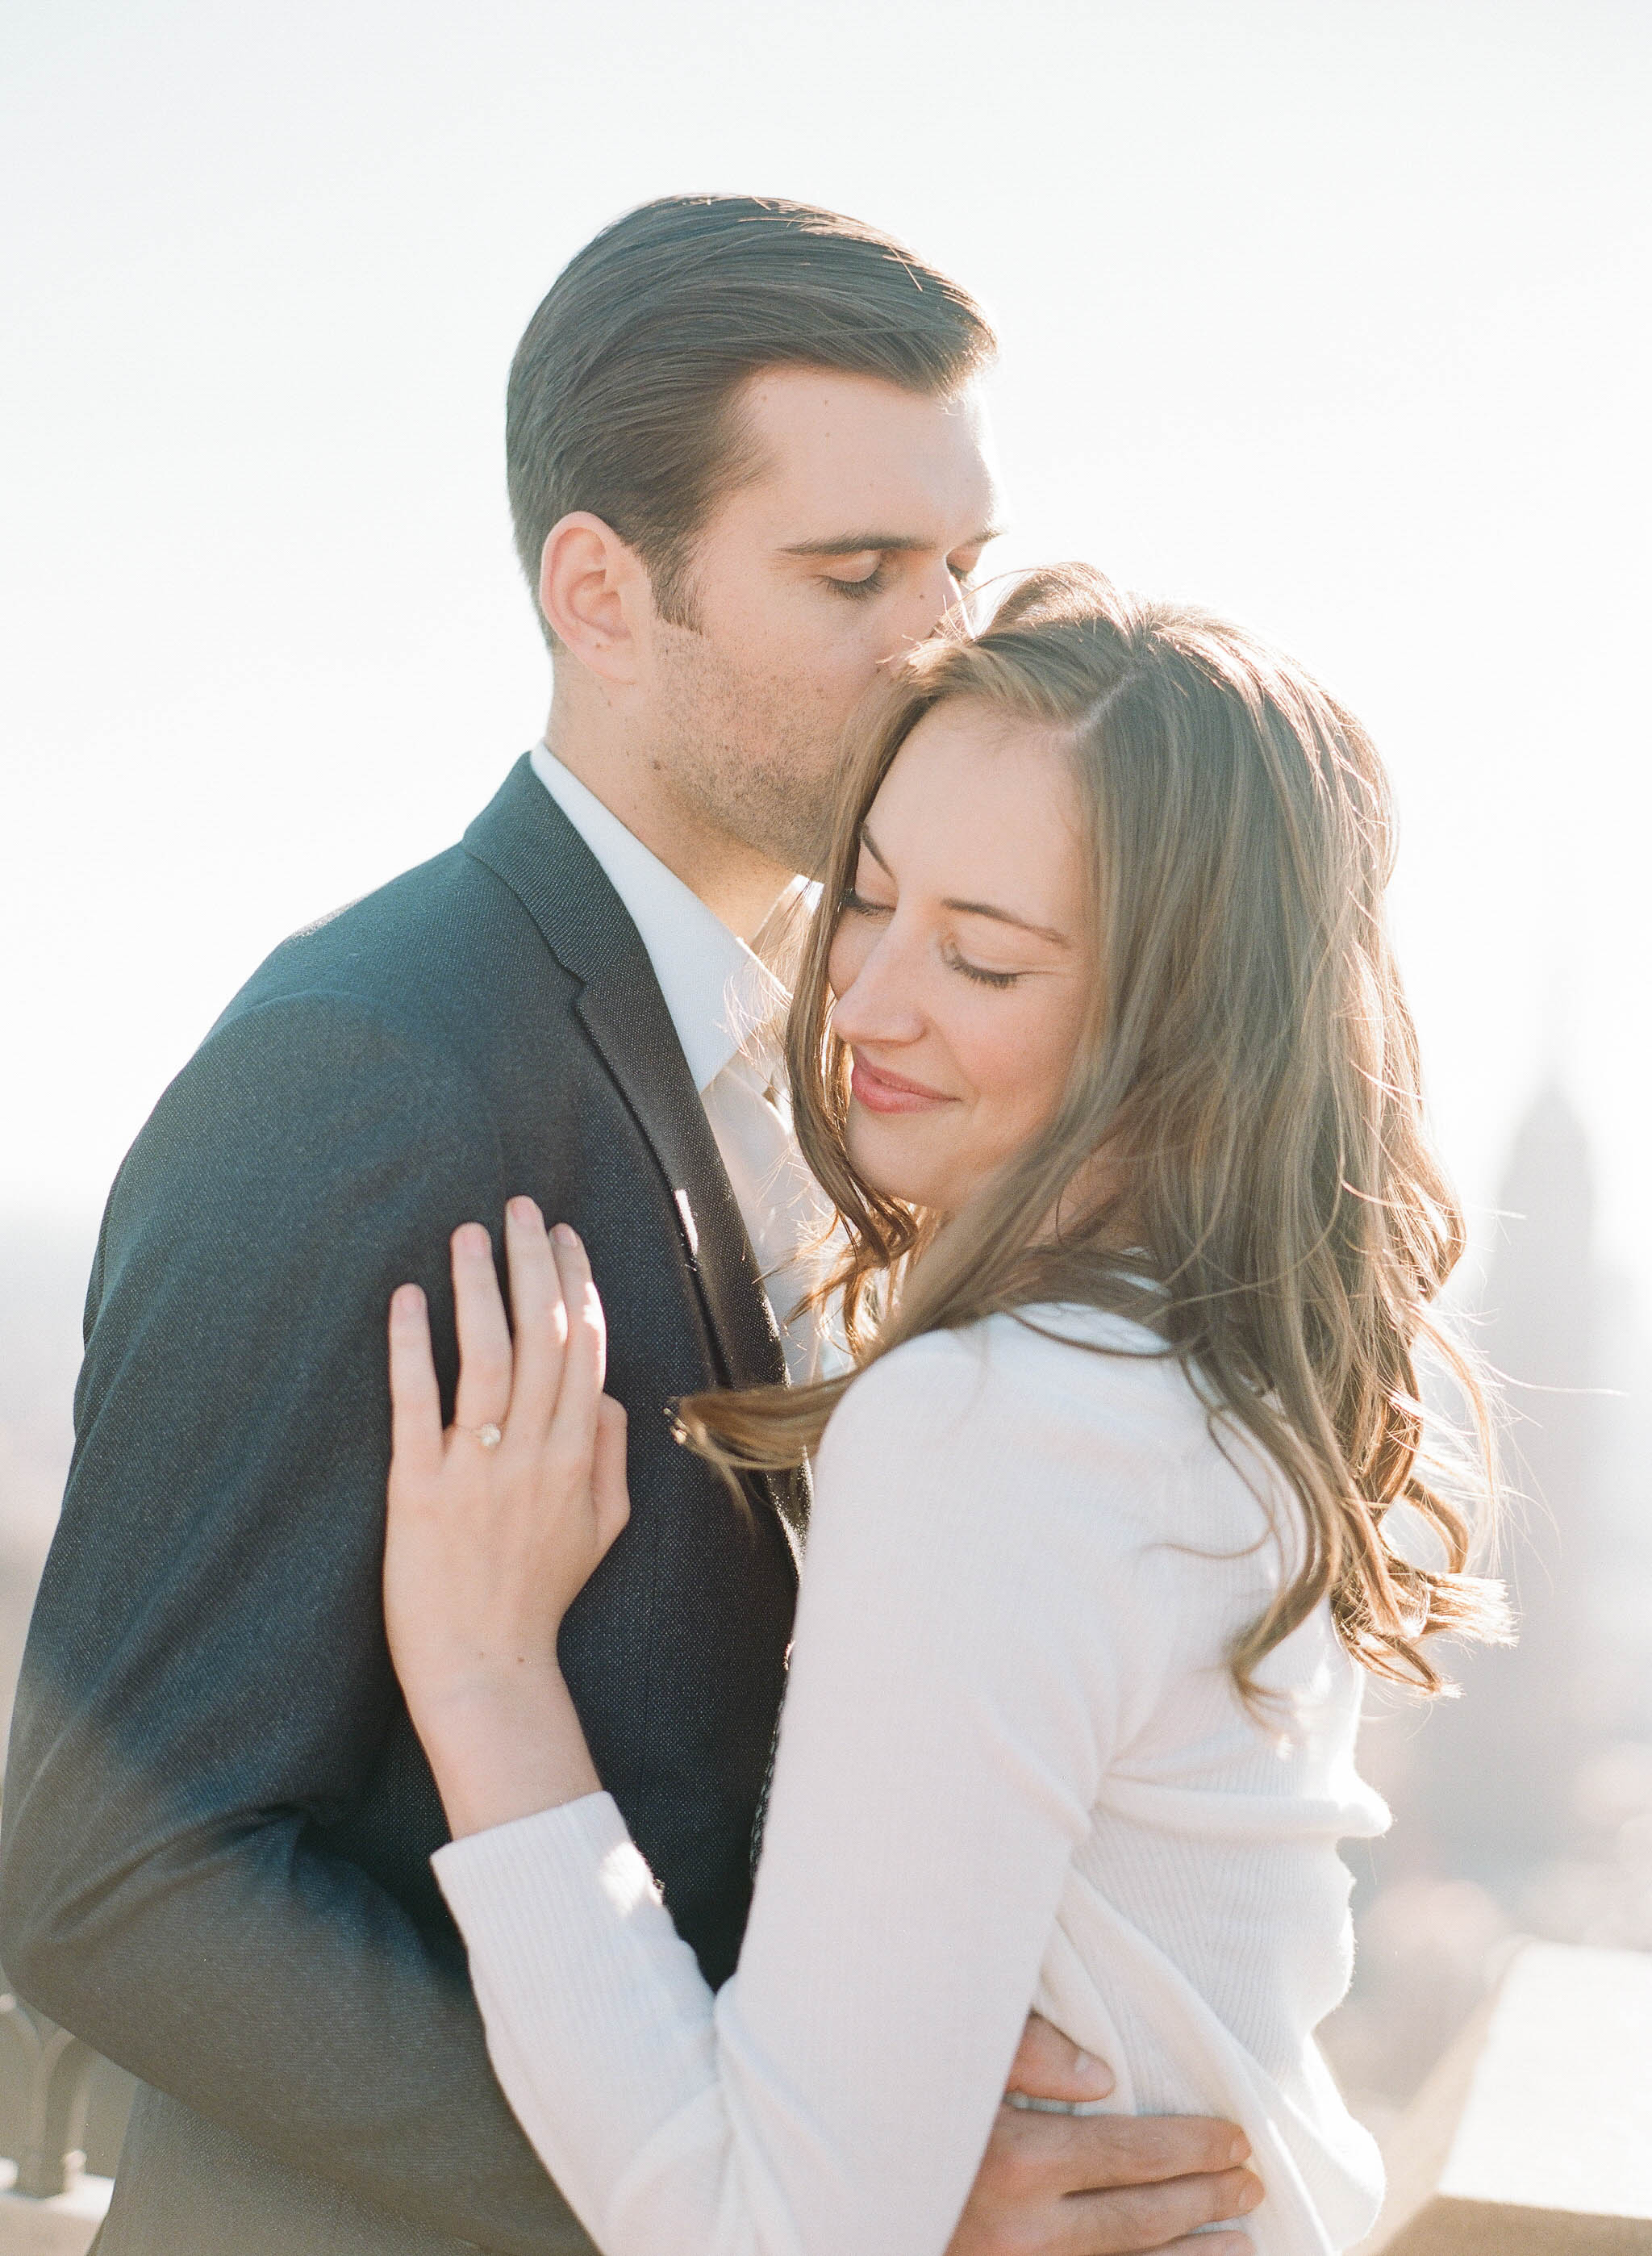 Future groom kisses his future bride at sunset in New York City during an engagement photoshoot; Sylvie Gil Photography